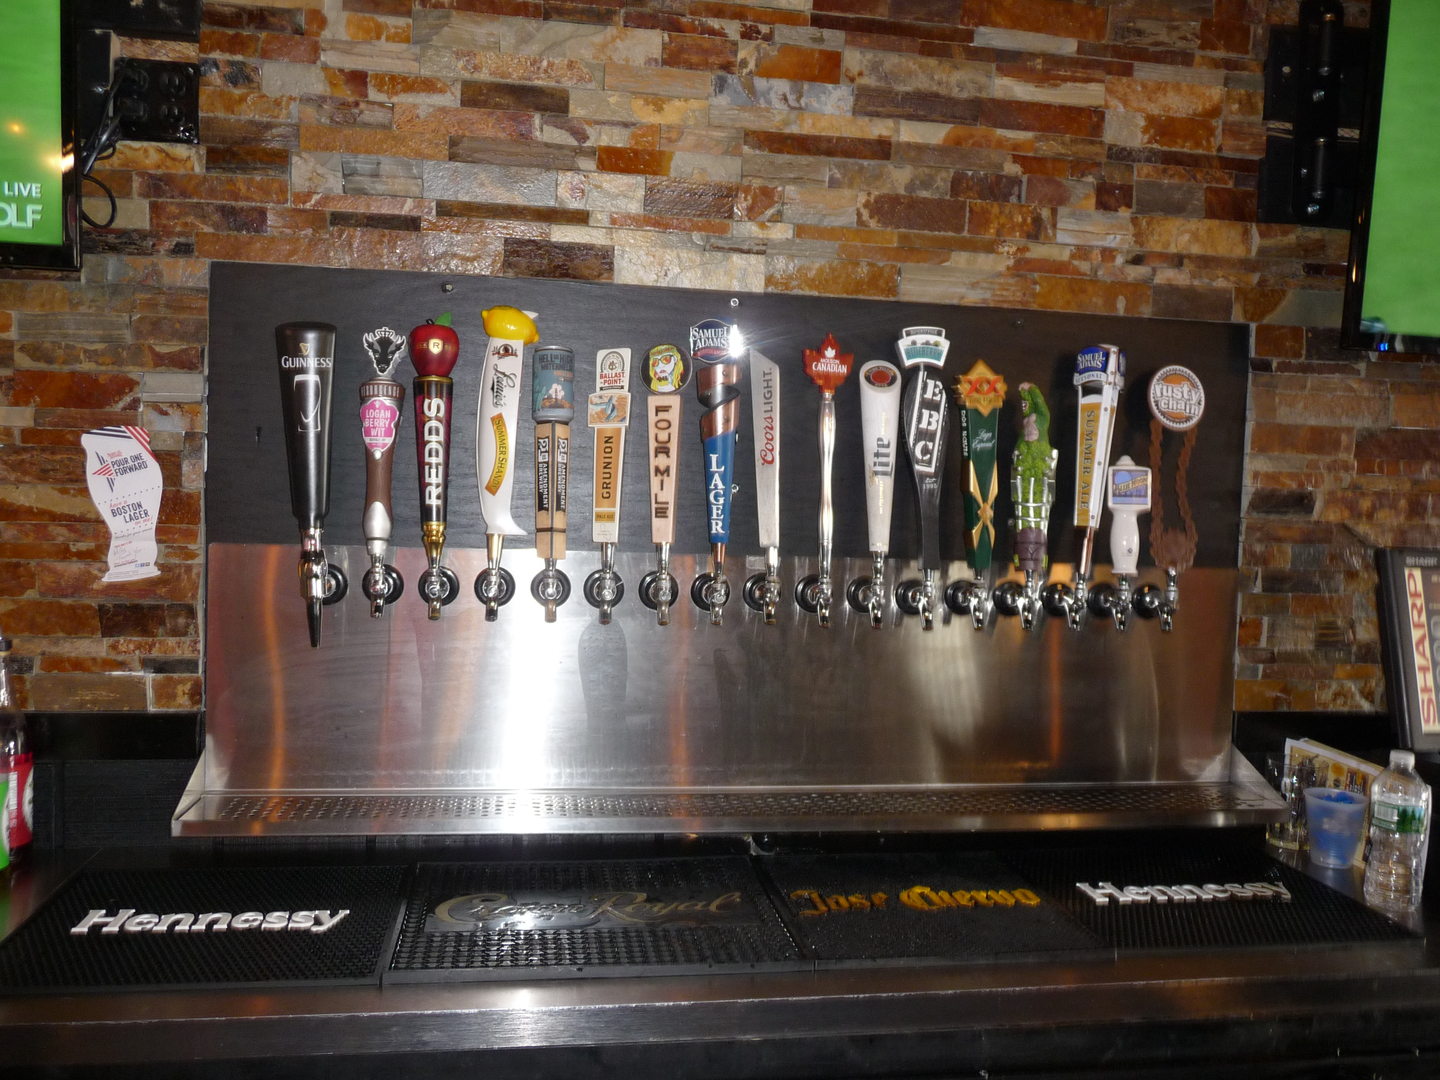 Mooney's Kenmore Beer Taps